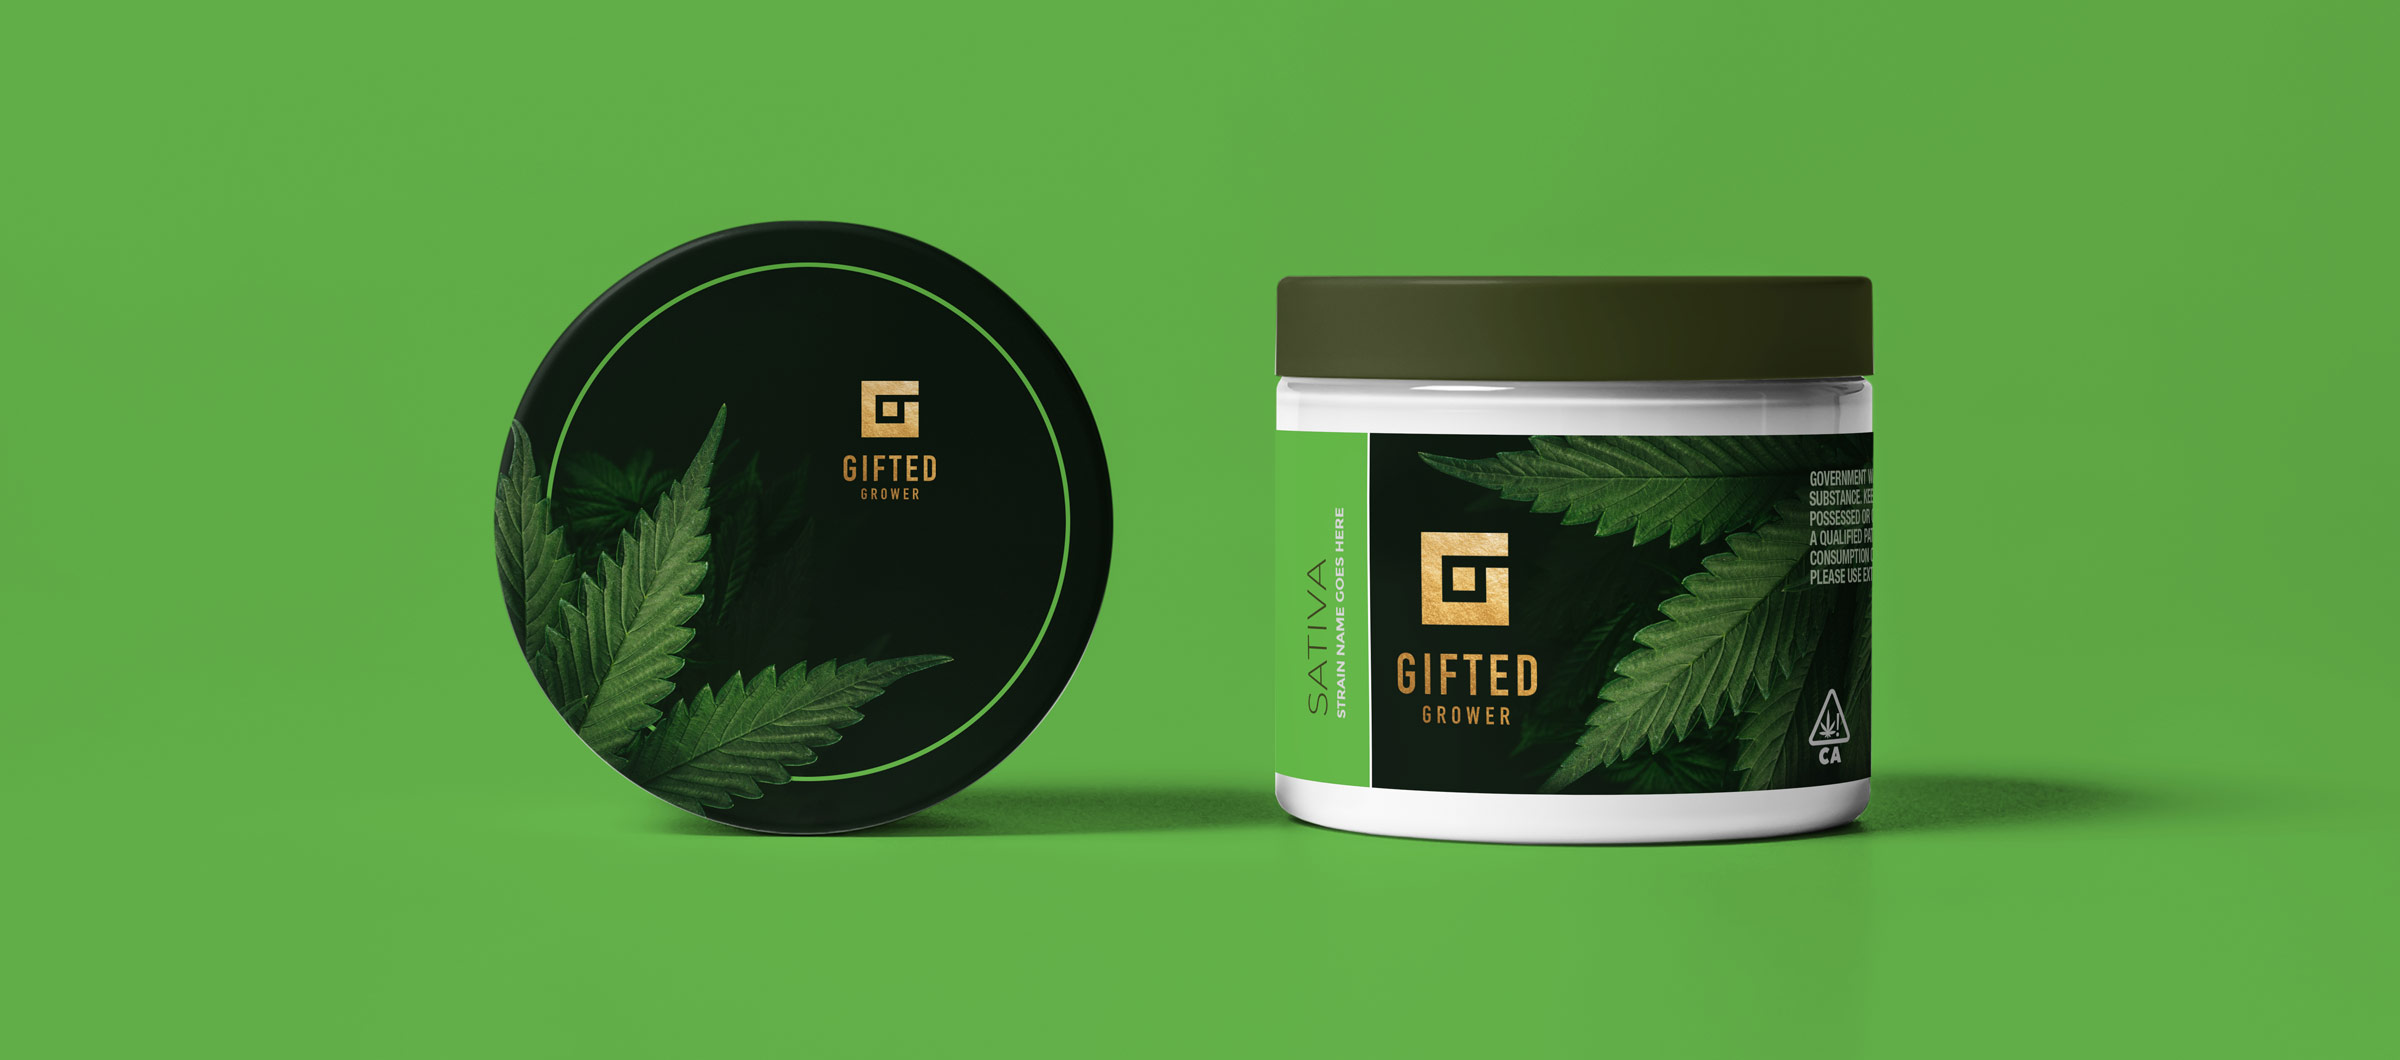 Gifted Grower brand identity, packaging design